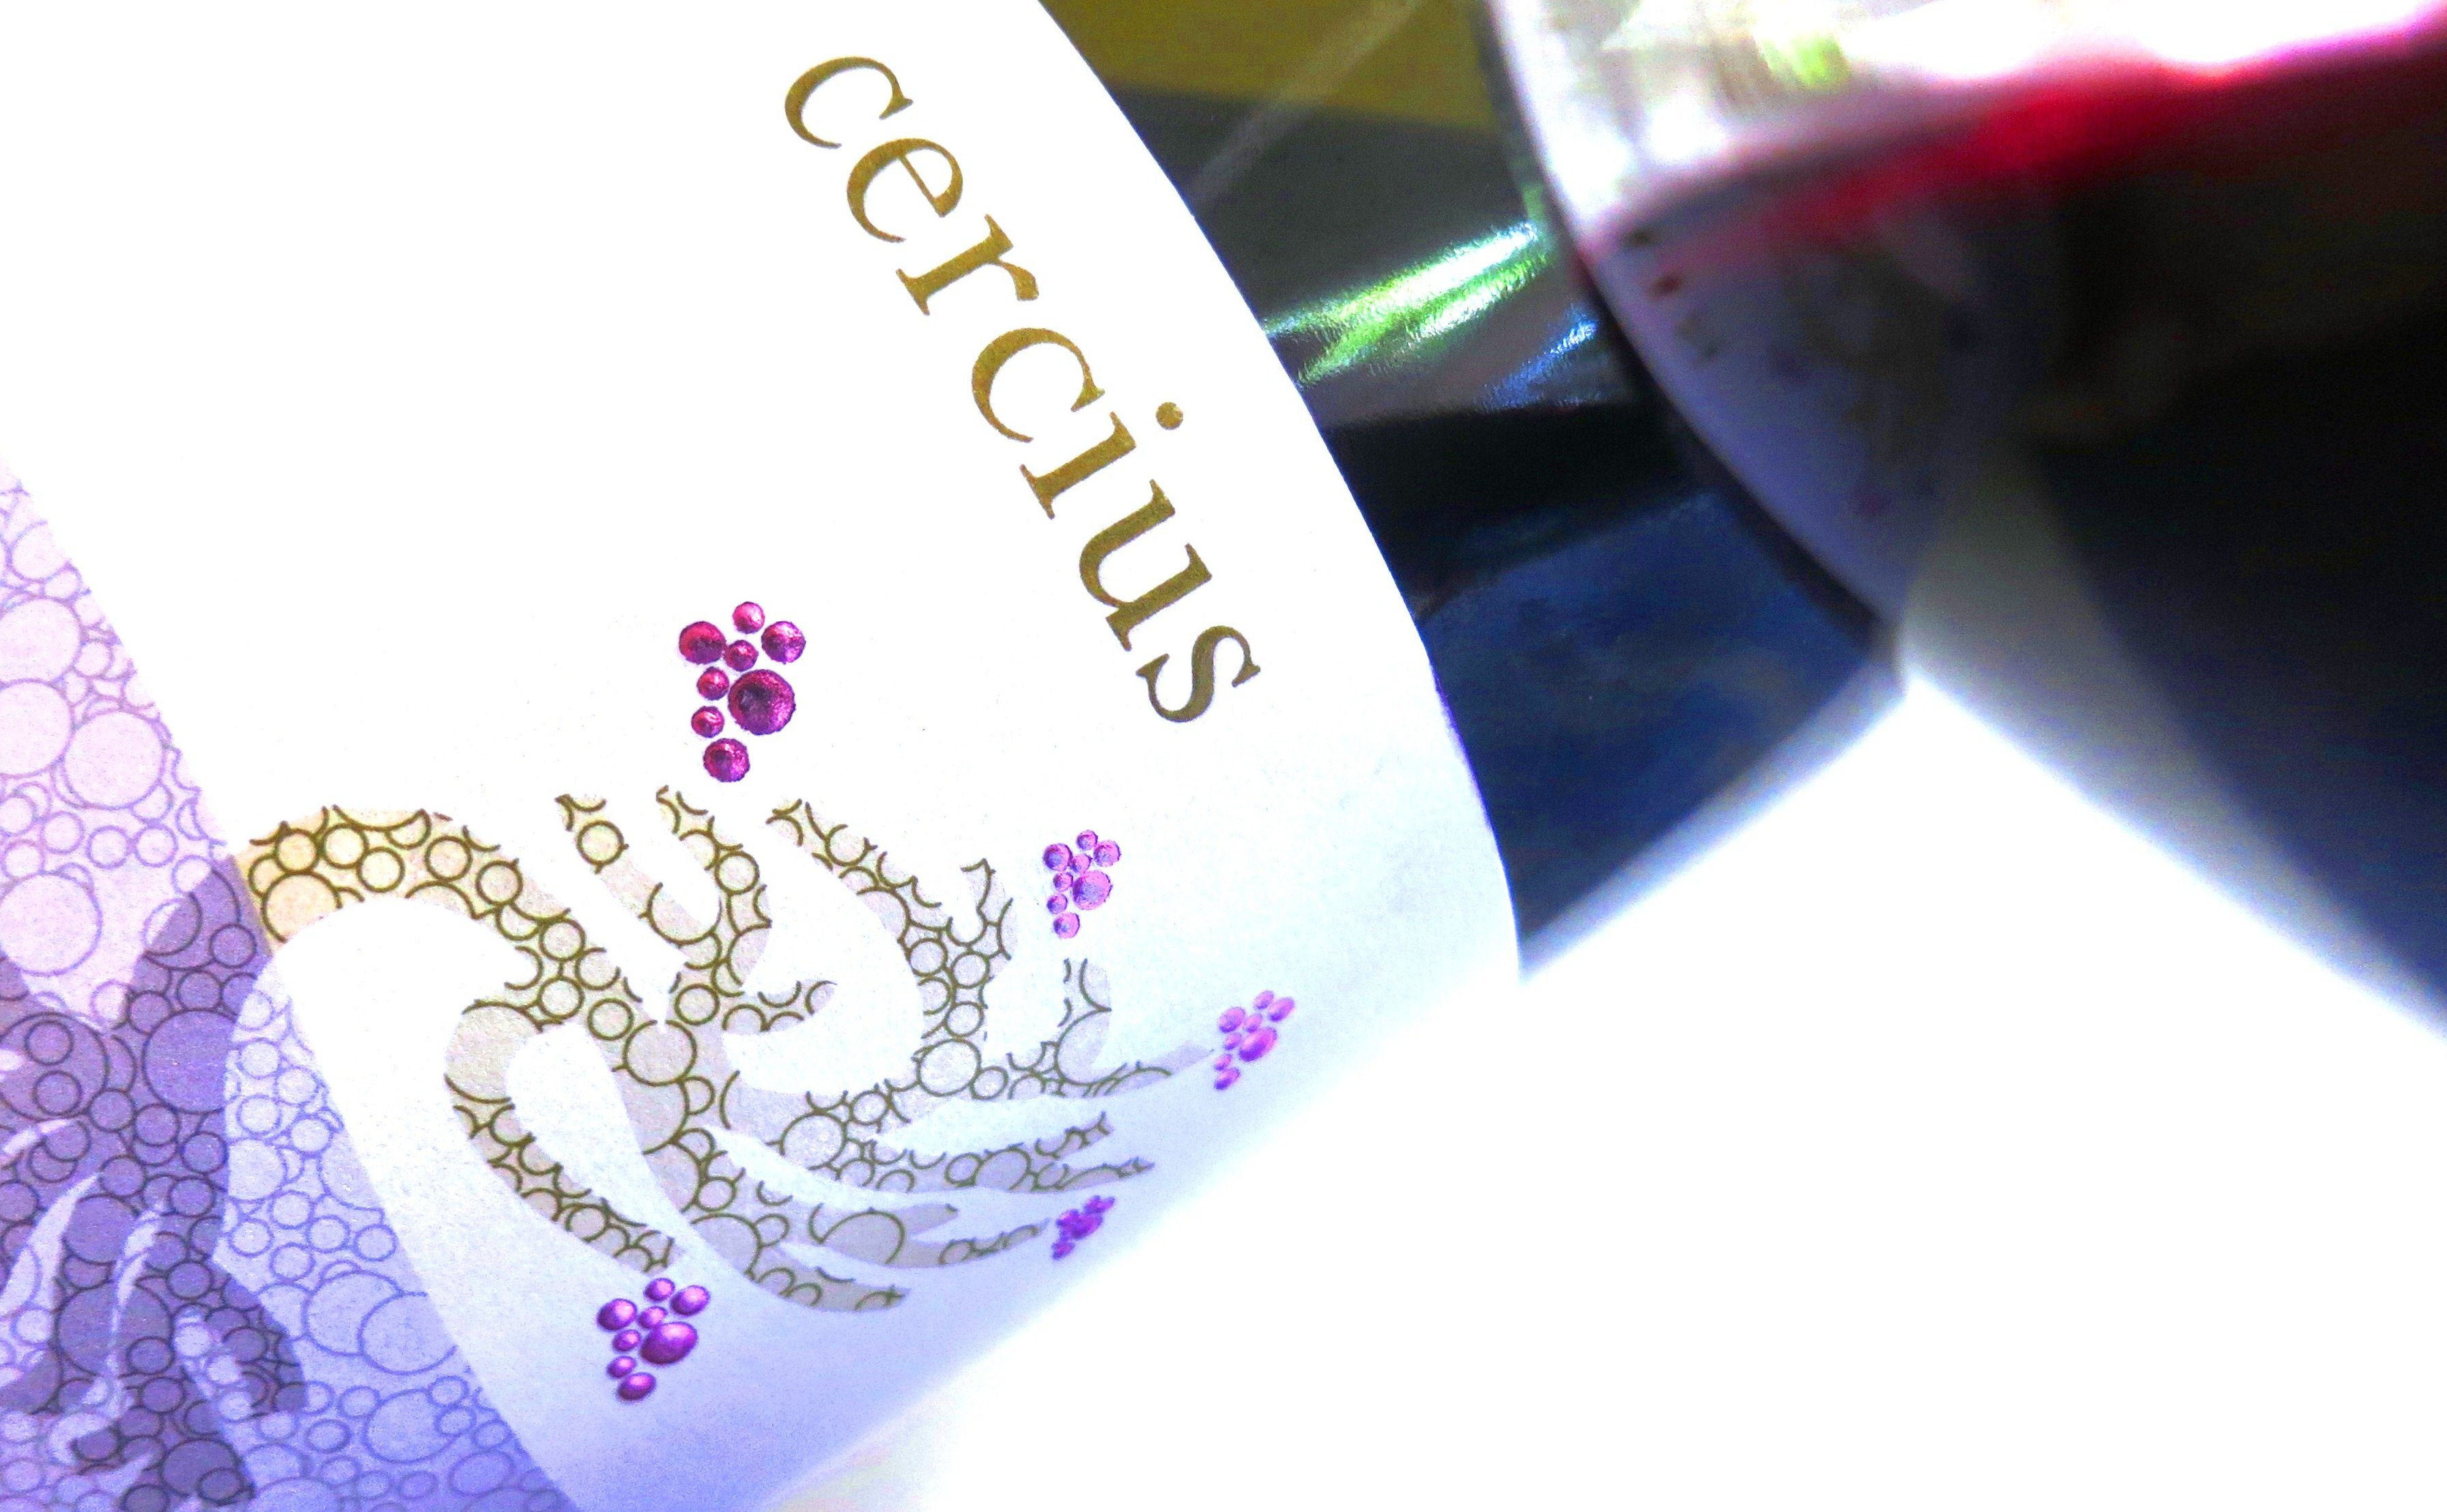 Michel Gassier Cercius Rouge 2012 Rhone Red Blends Wine Red Blends Wine